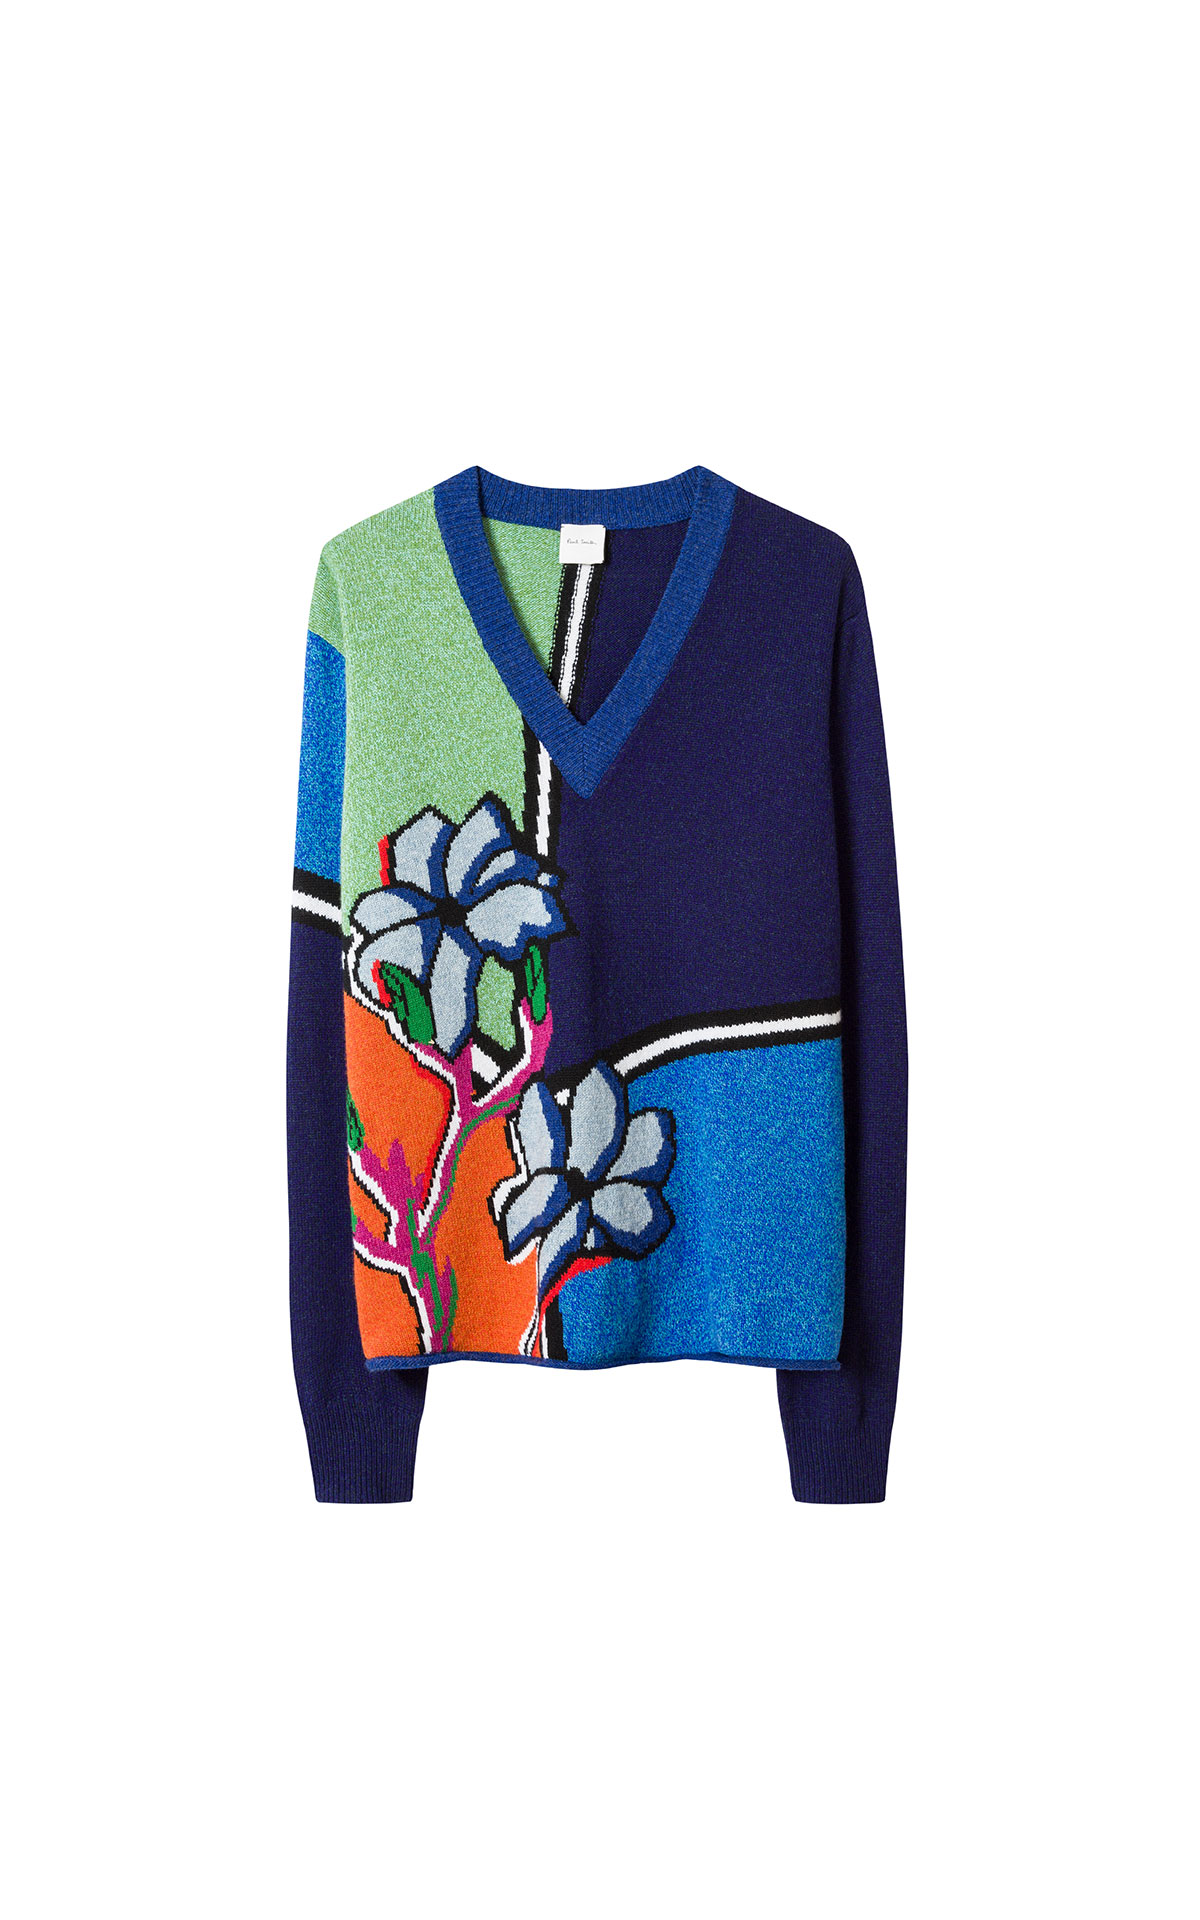 Paul Smith Women's artist studio jumper at The Bicester Village Shopping Collection